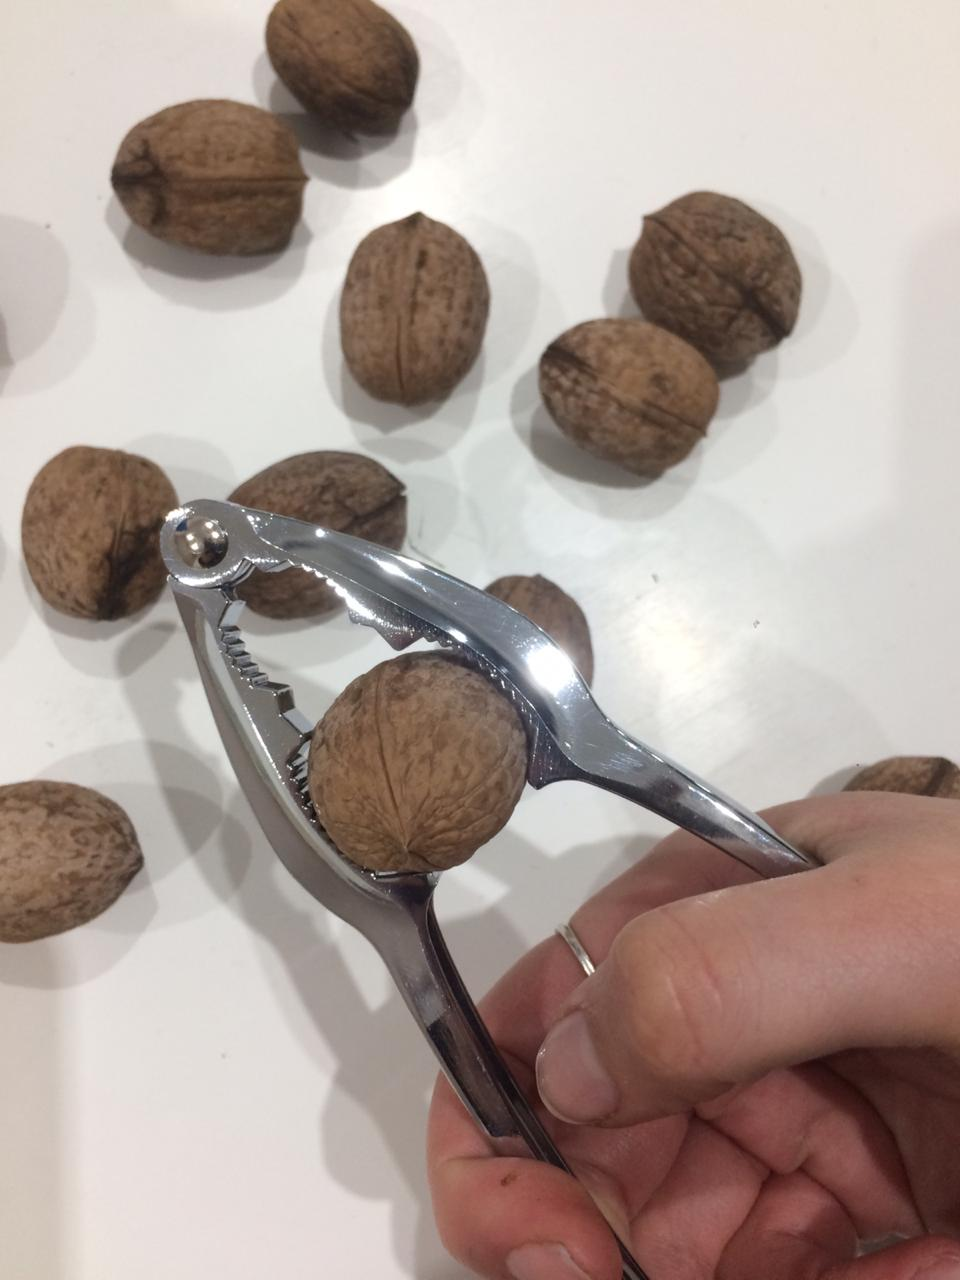 Rompe Nueces - Frutos Secos